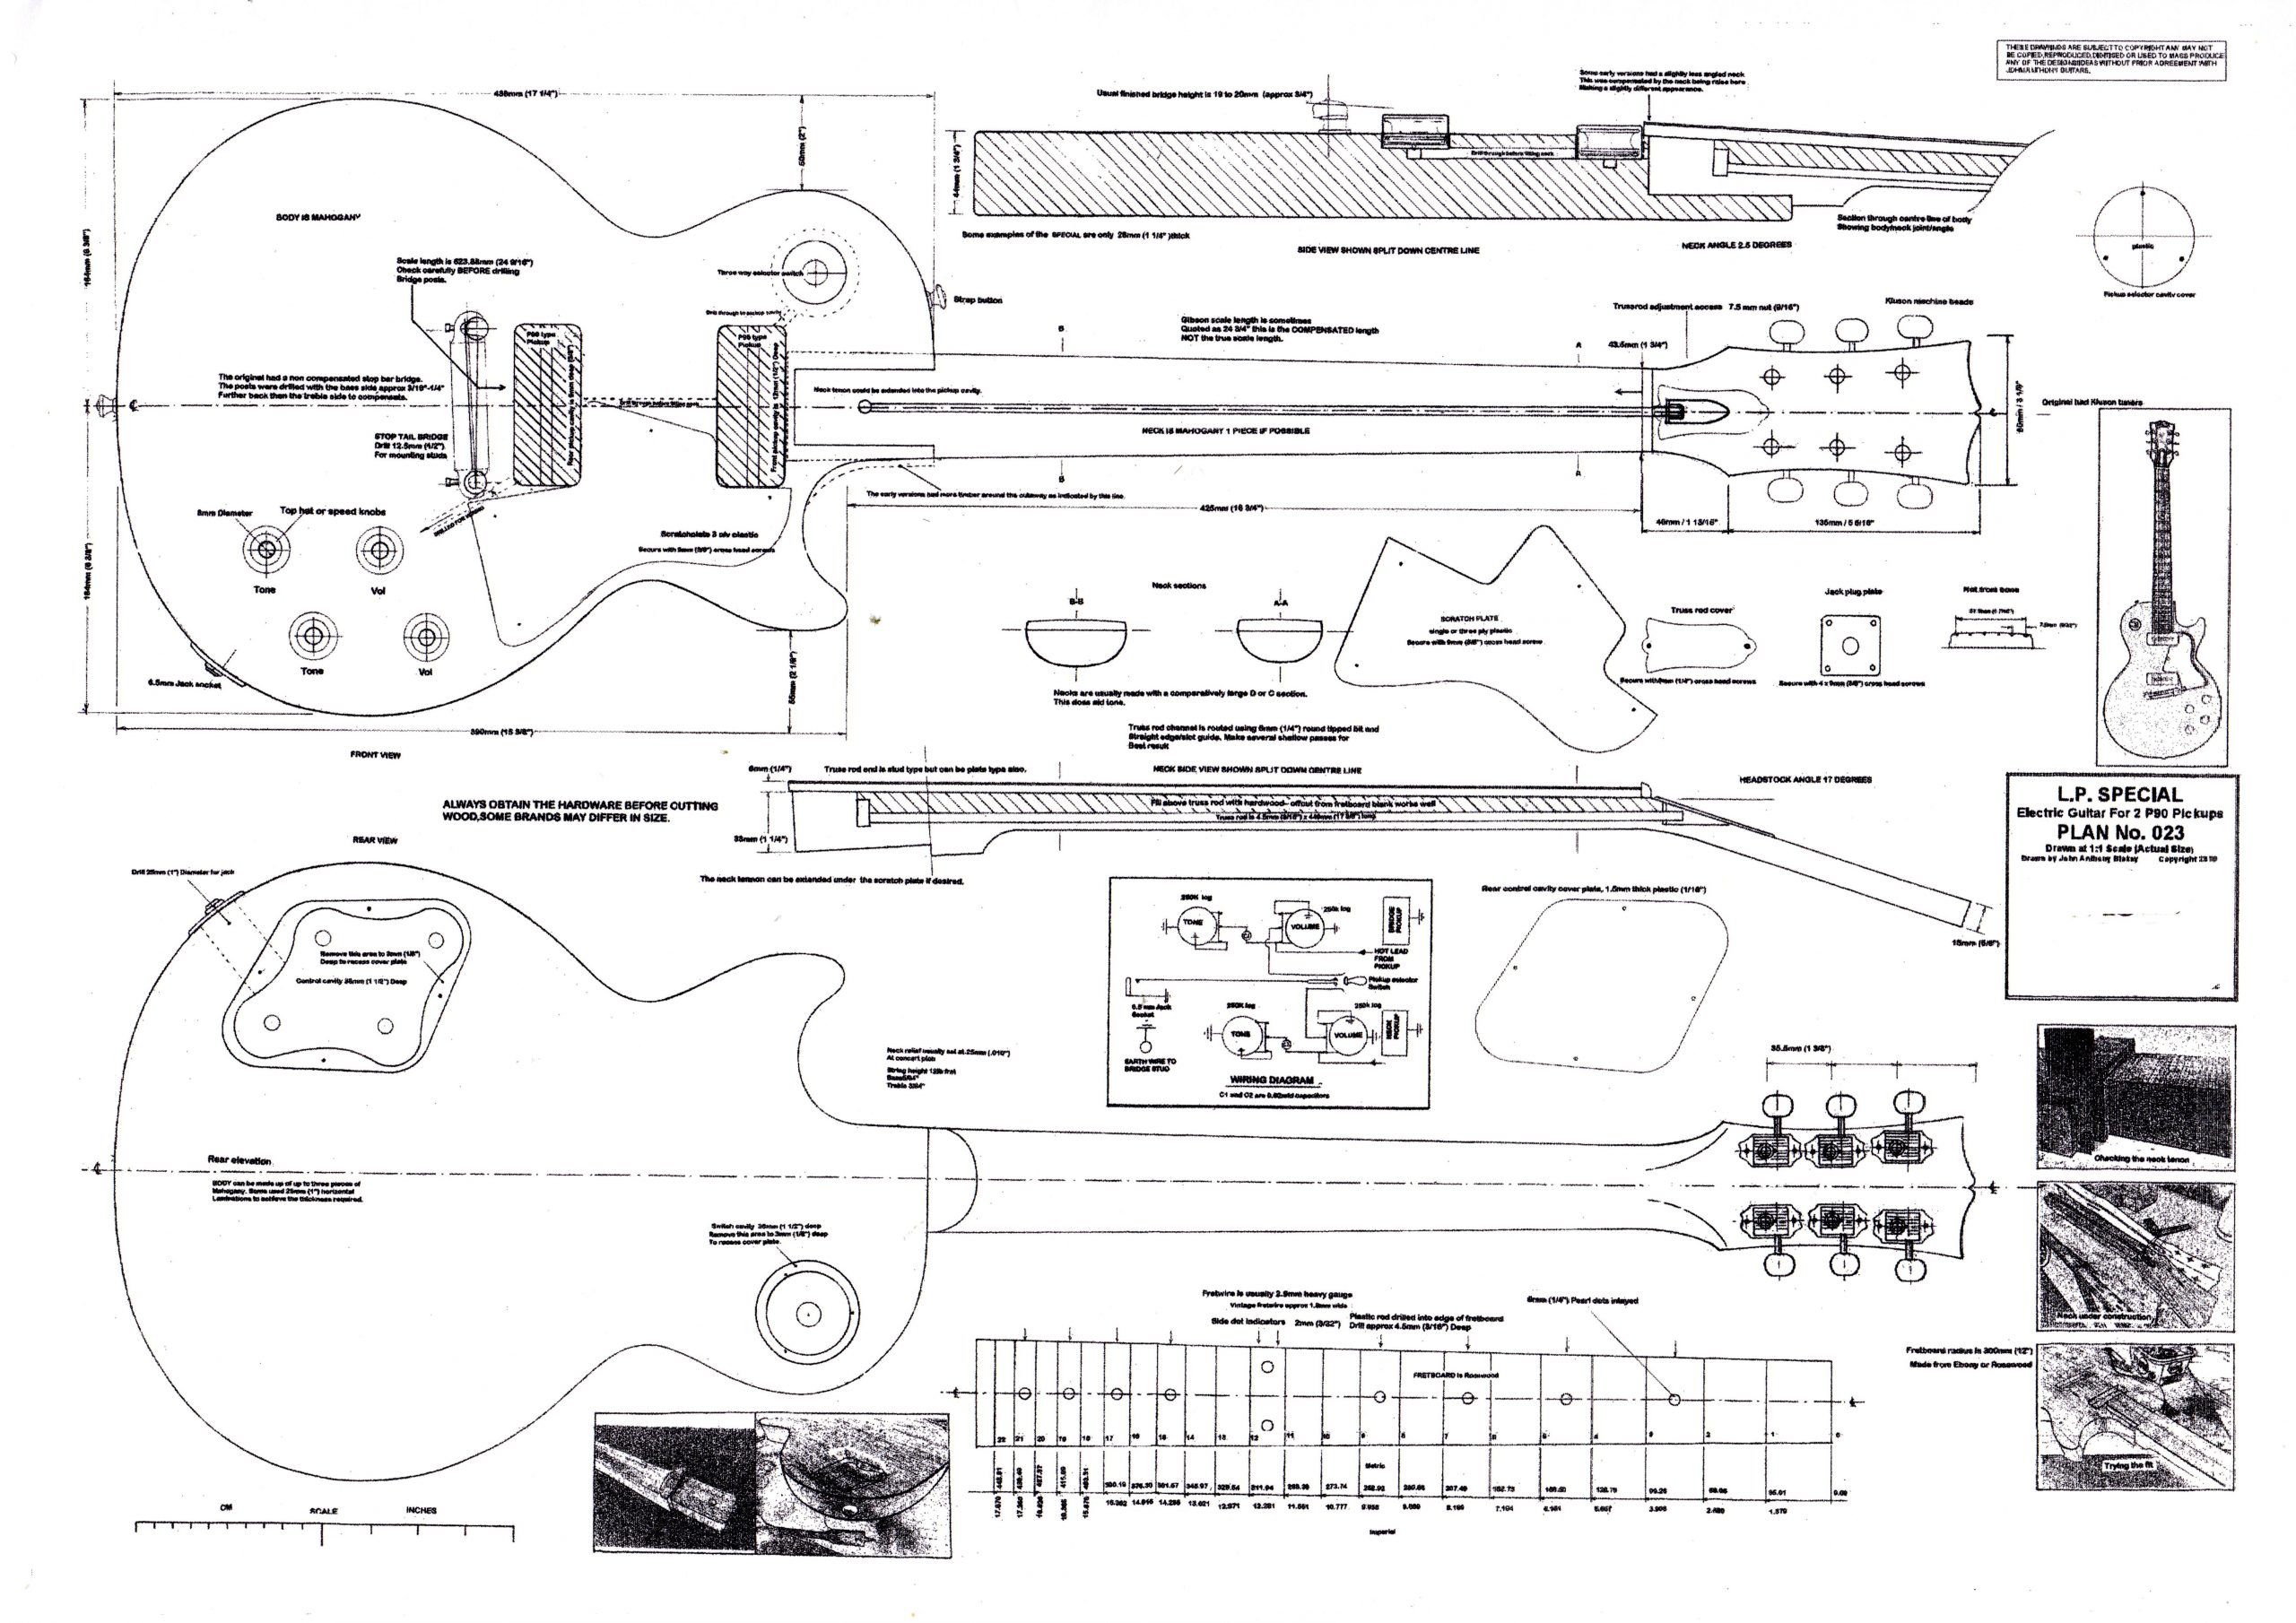 Les Paul Special Wiring Diagram - Collection